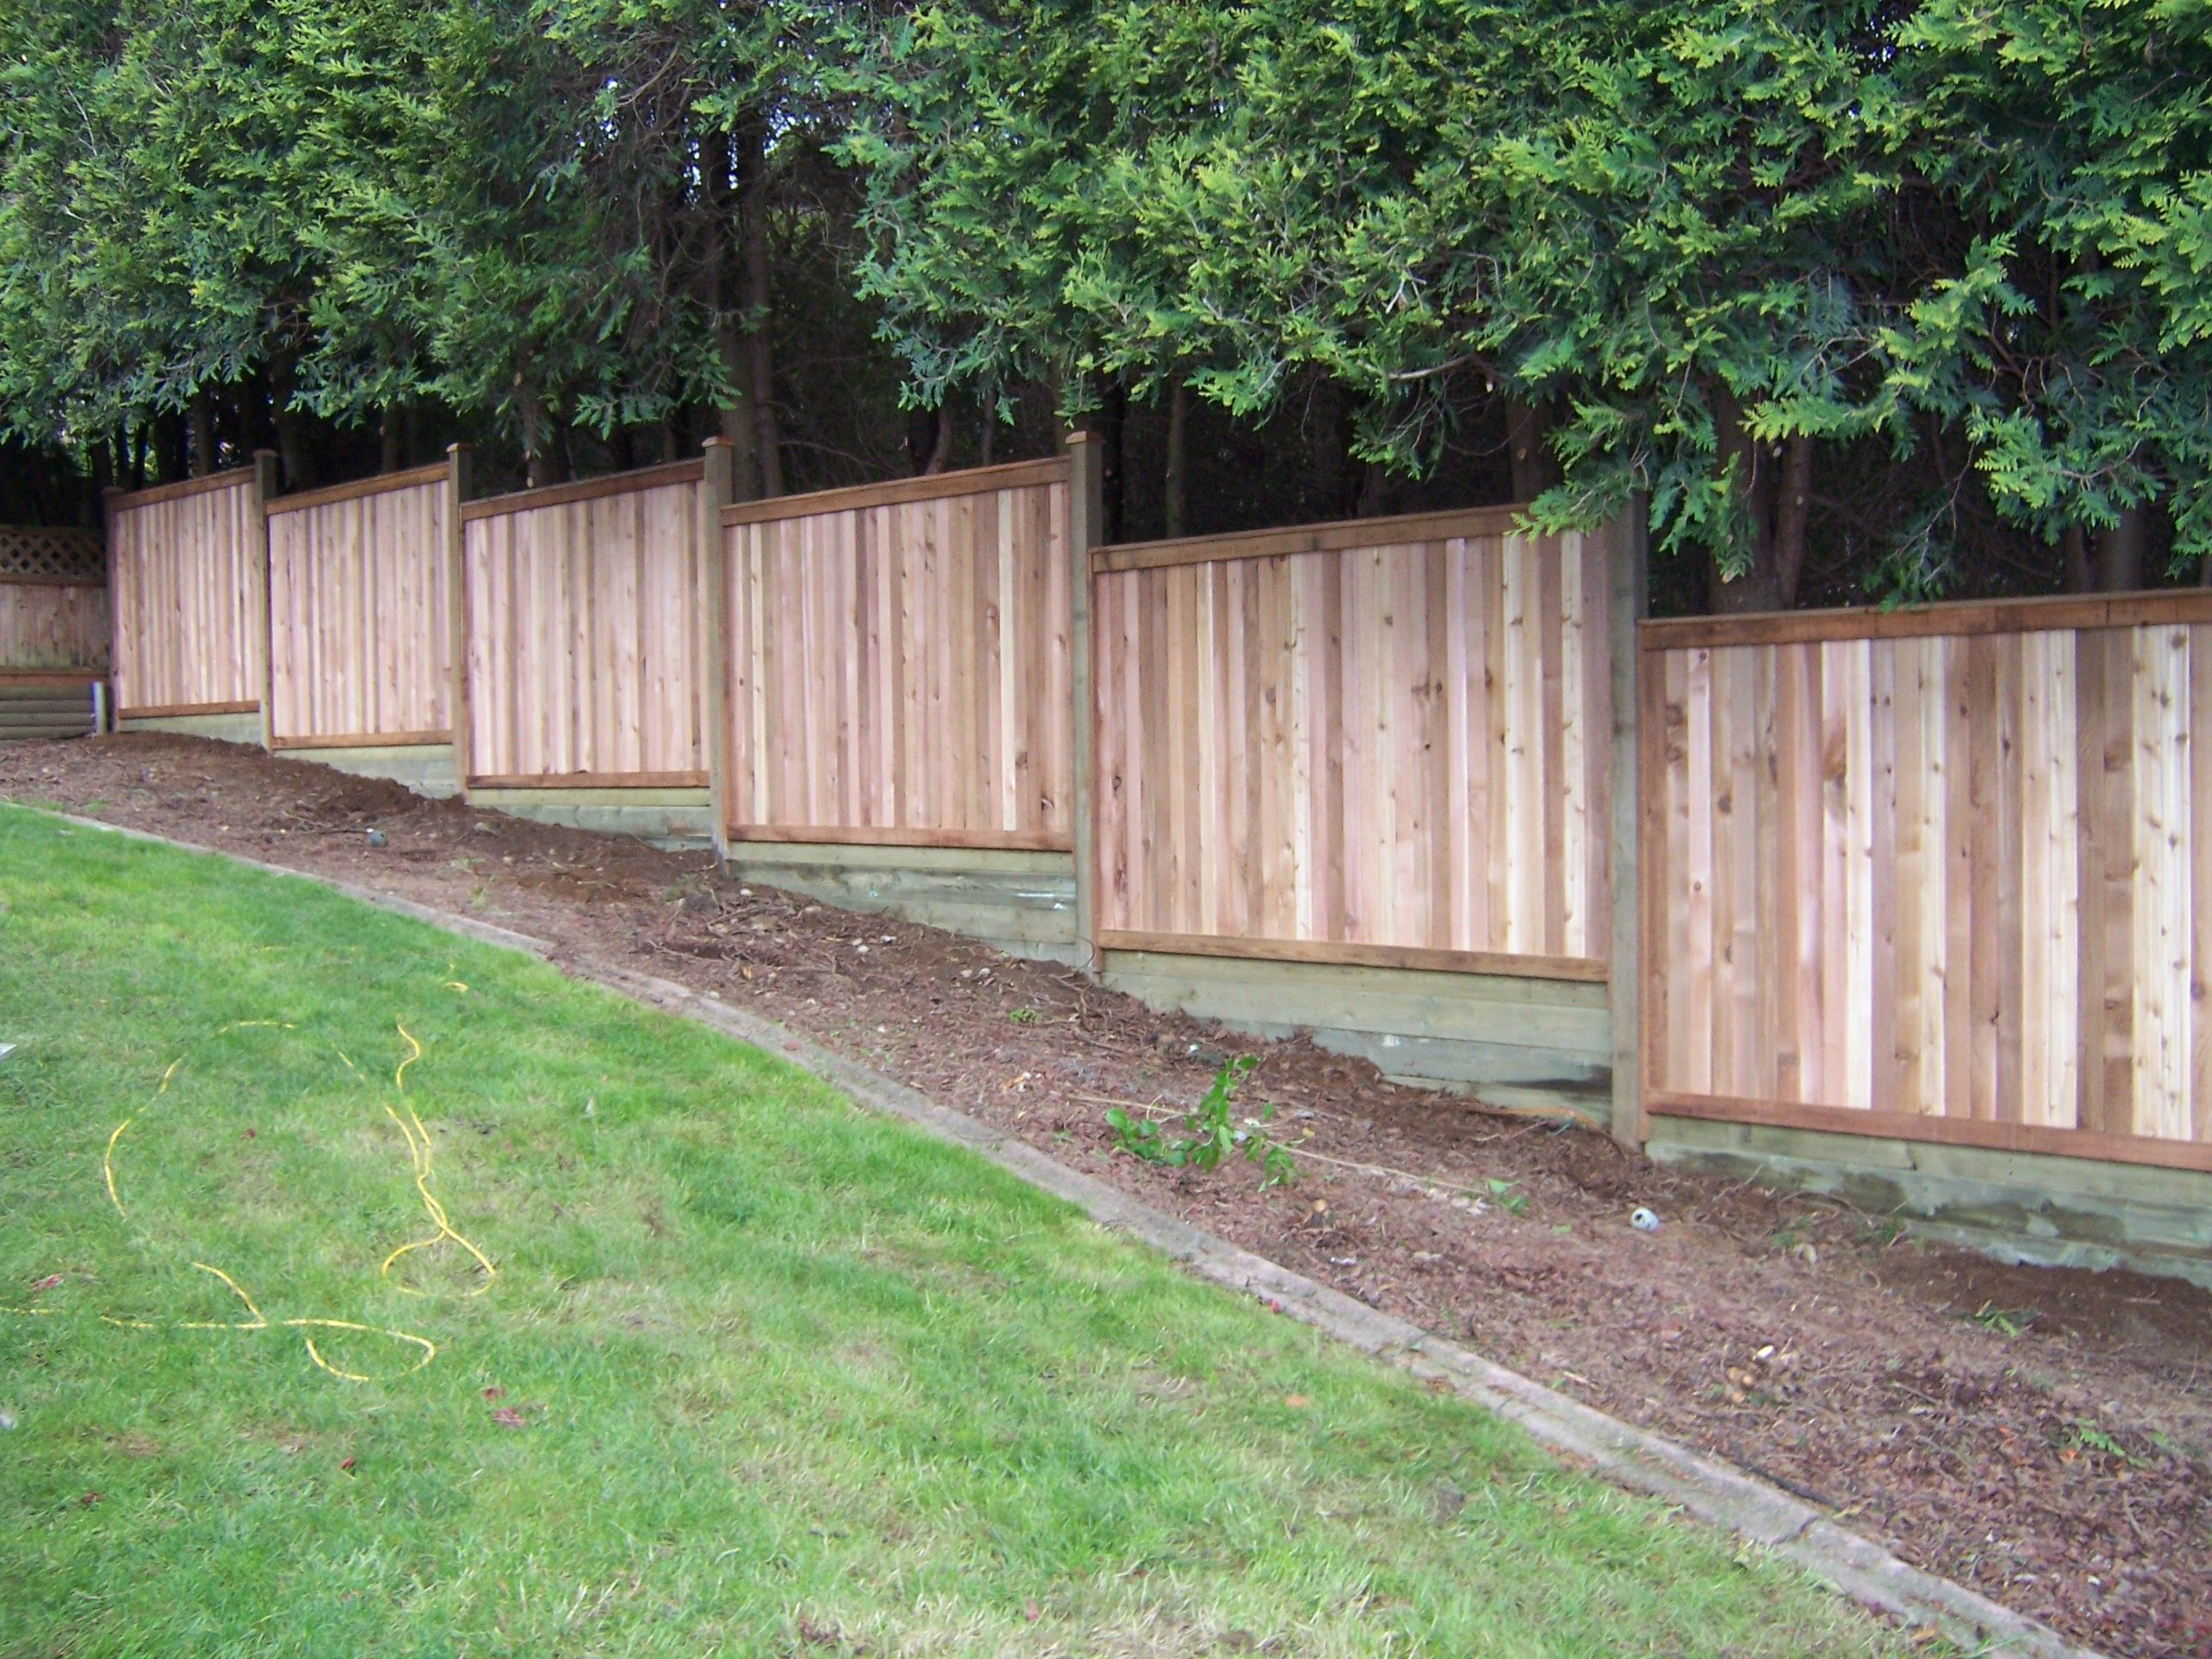 Ideas For Filling In Pre-fabbed Fence Sloping Grade | Sloped ... on drain backyard, slope backyard, city backyard, design backyard, sod backyard, level backyard,